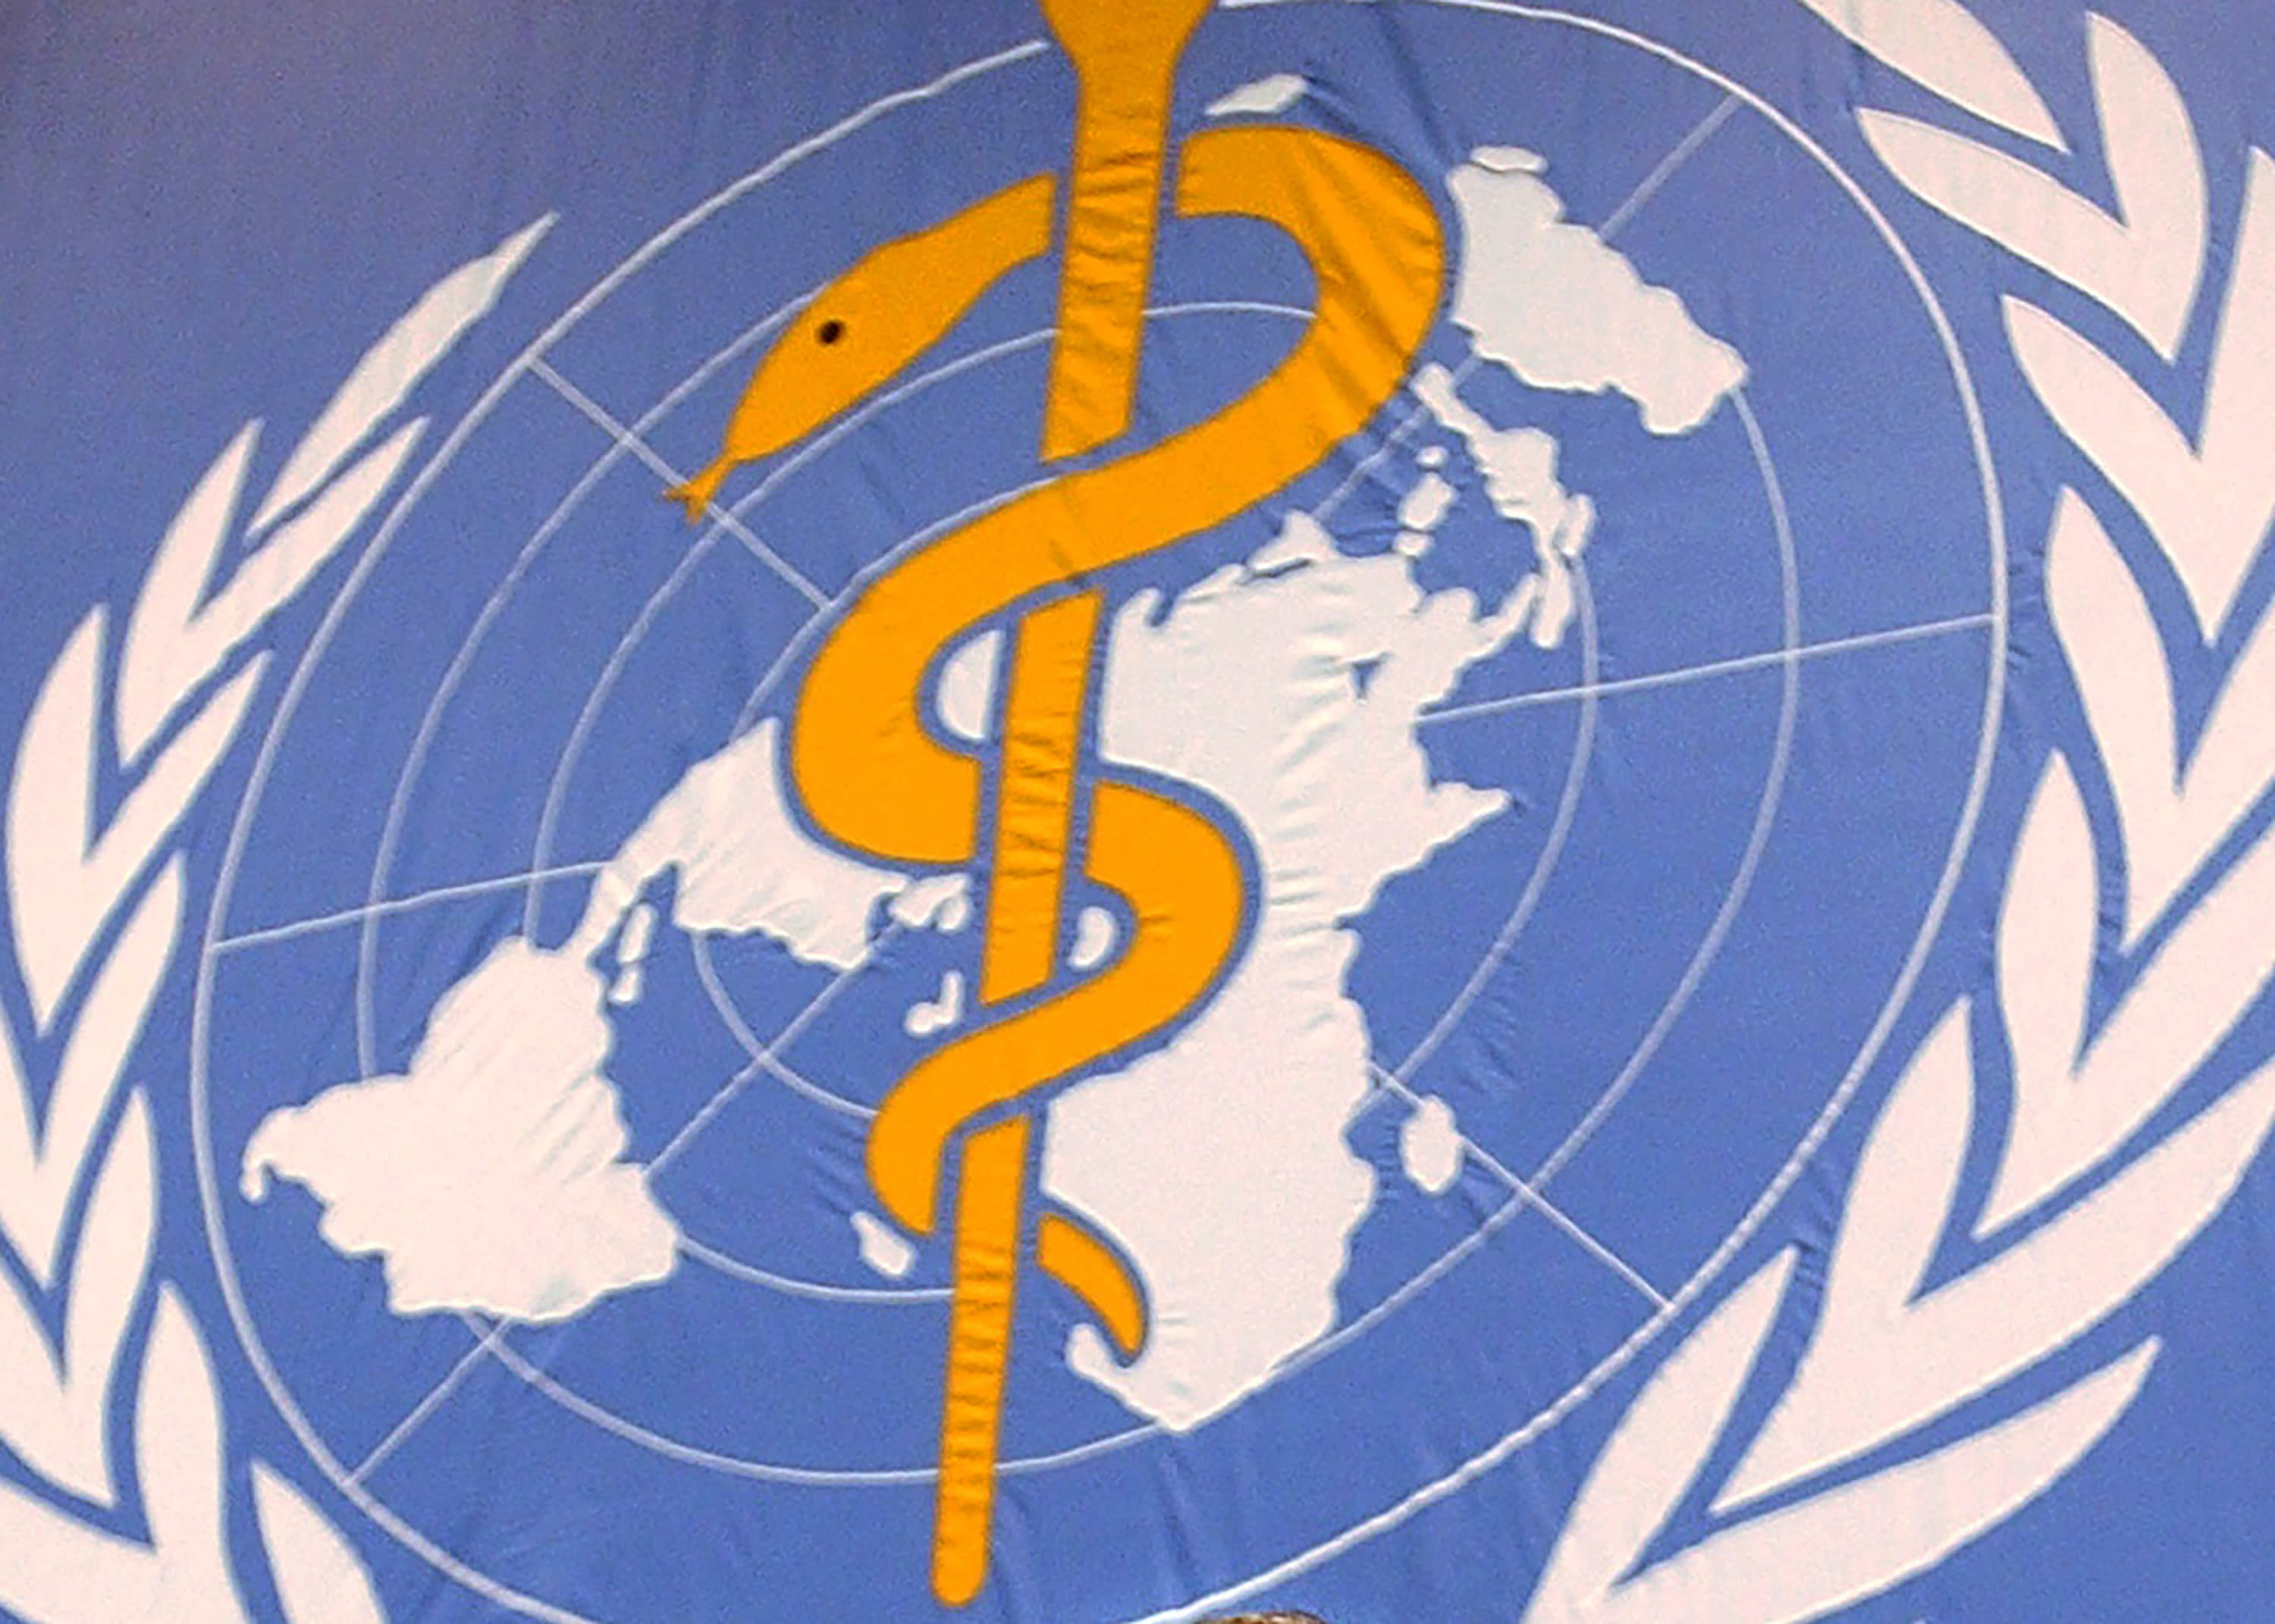 WHO Europe chief urges nations to keep up COVID quarantines